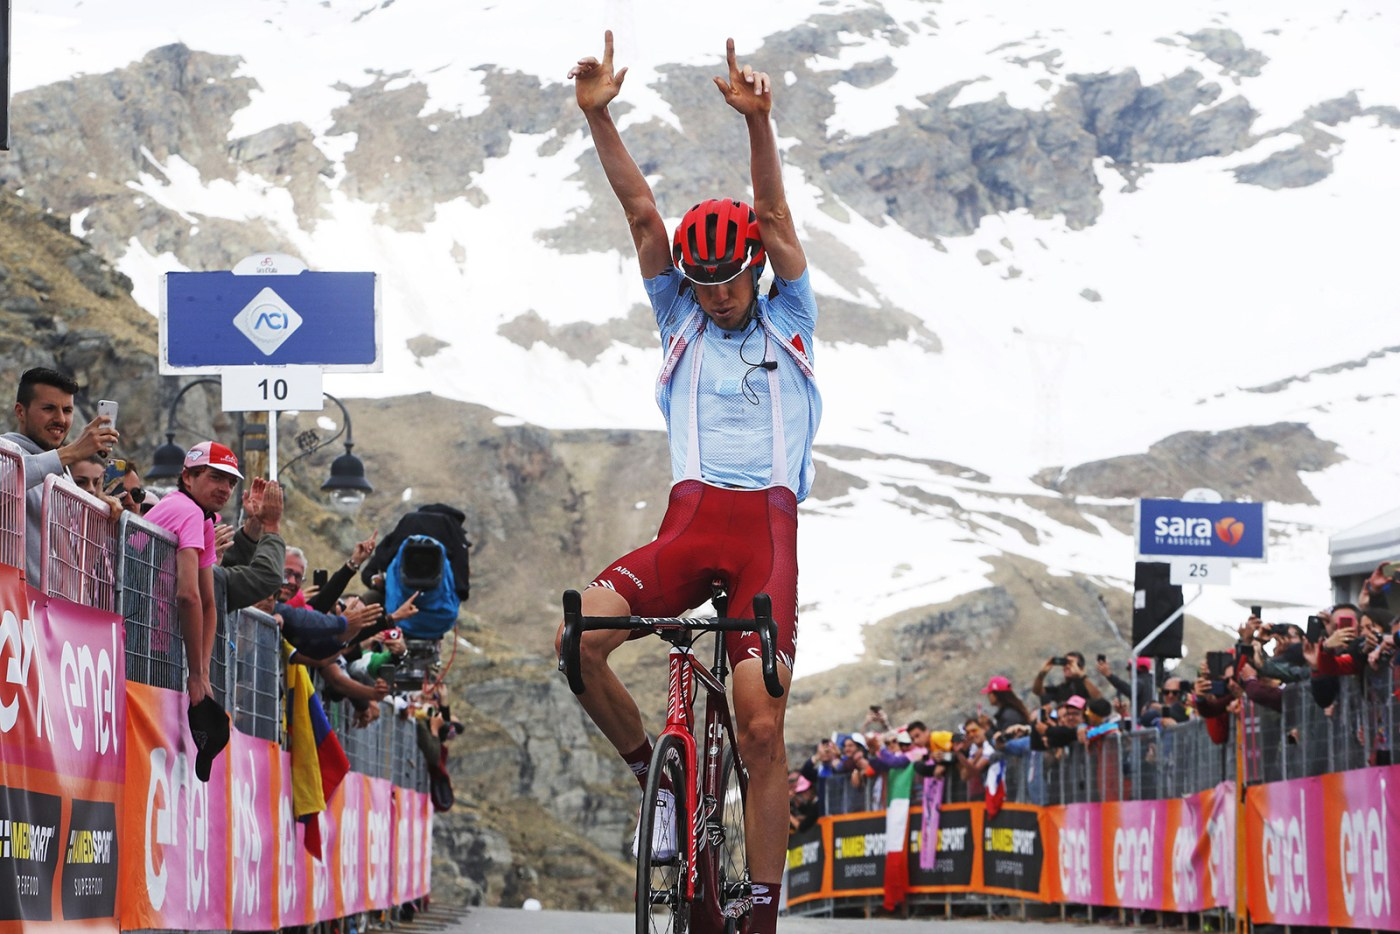 2019 Giro d'Italia Stage 13 Recap: The Big Mountains Shake Things Up 3